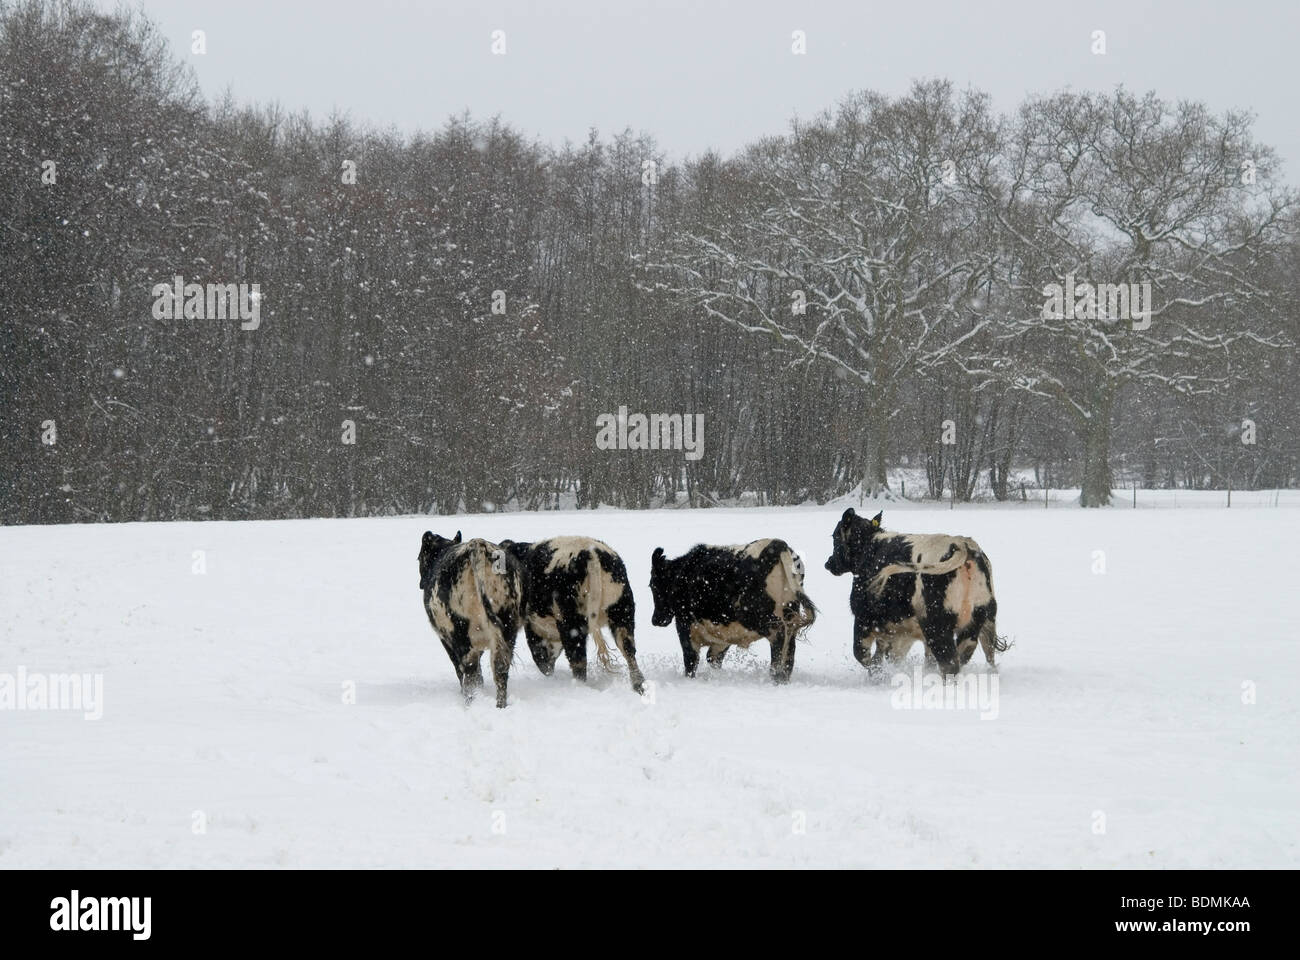 Christmas card snowy scene with cows galloping in snow on farmland ...